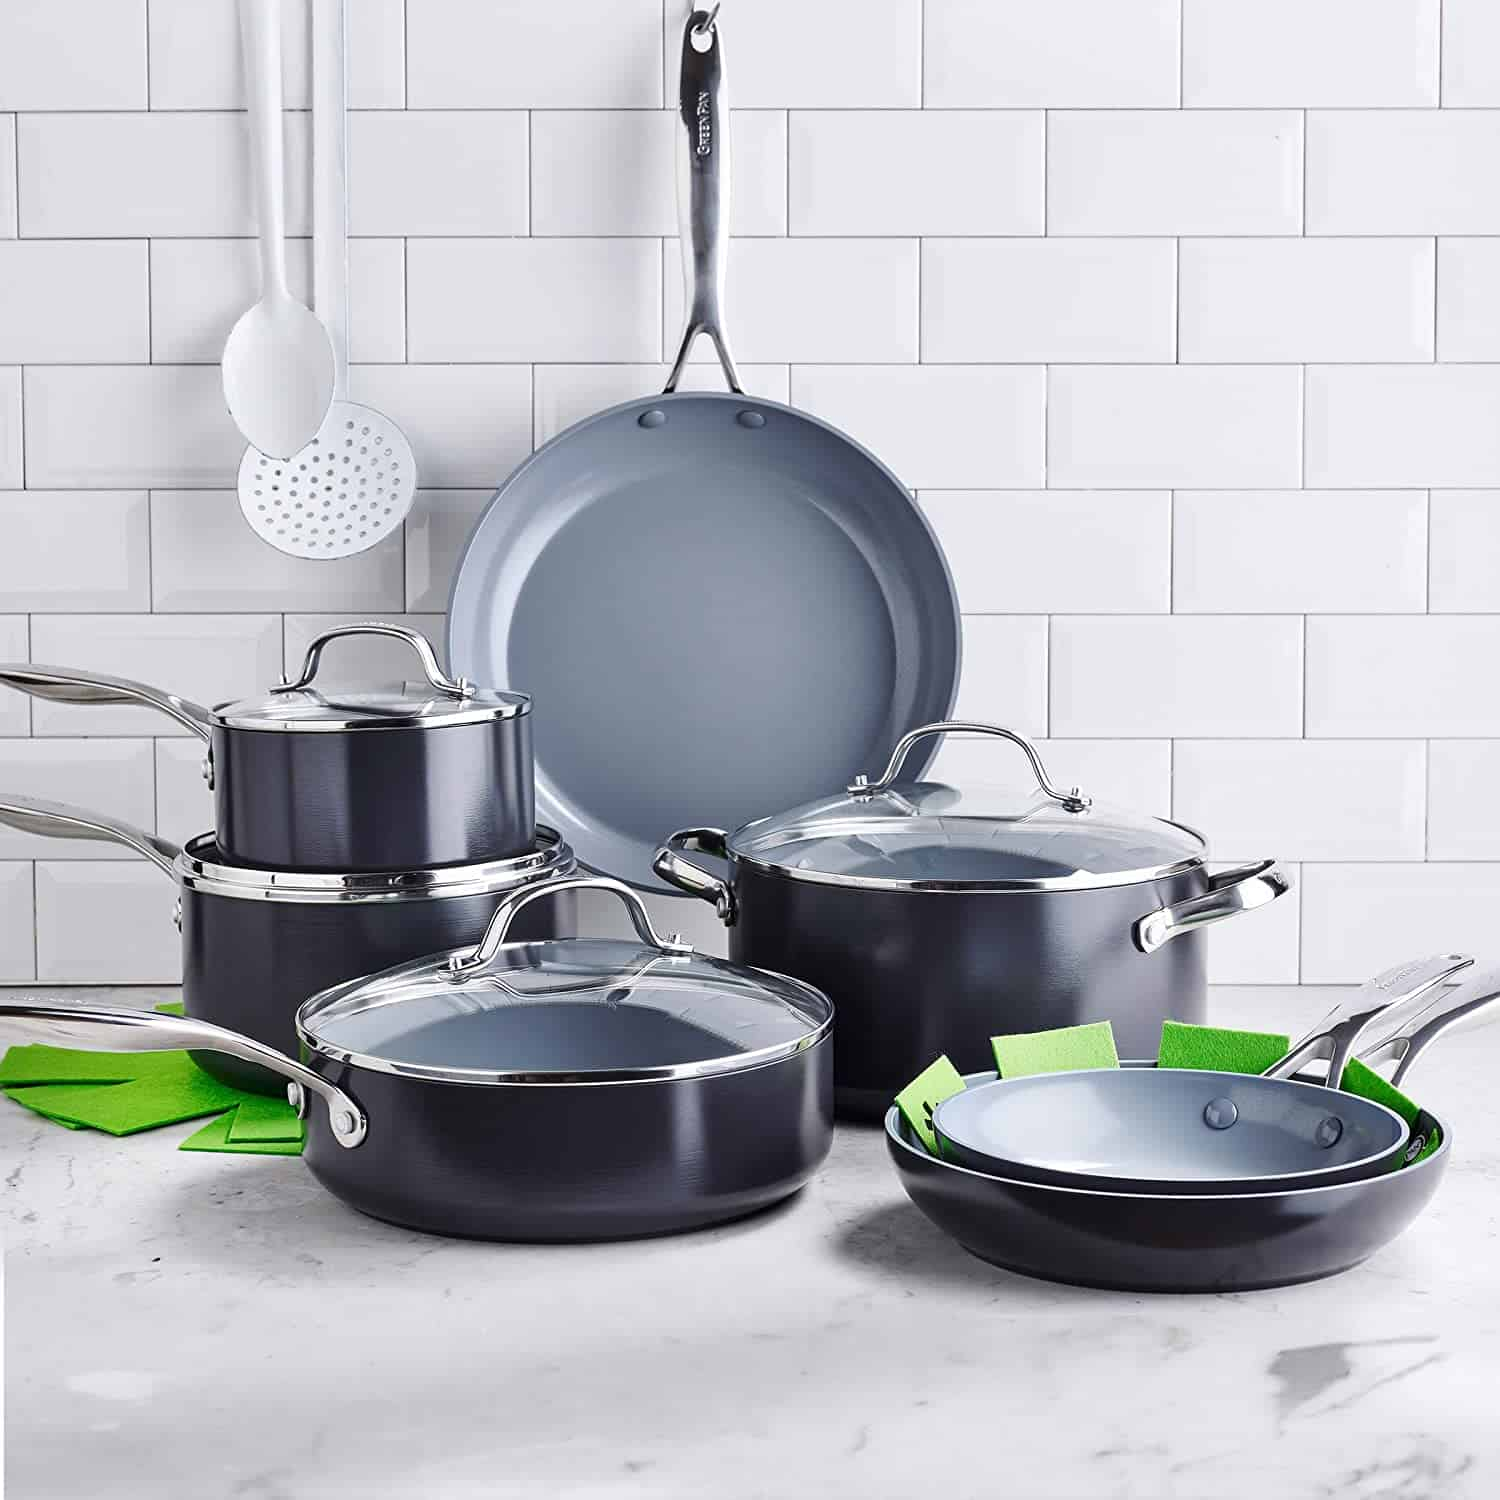 Best ceramic pans for induction: Greenpan